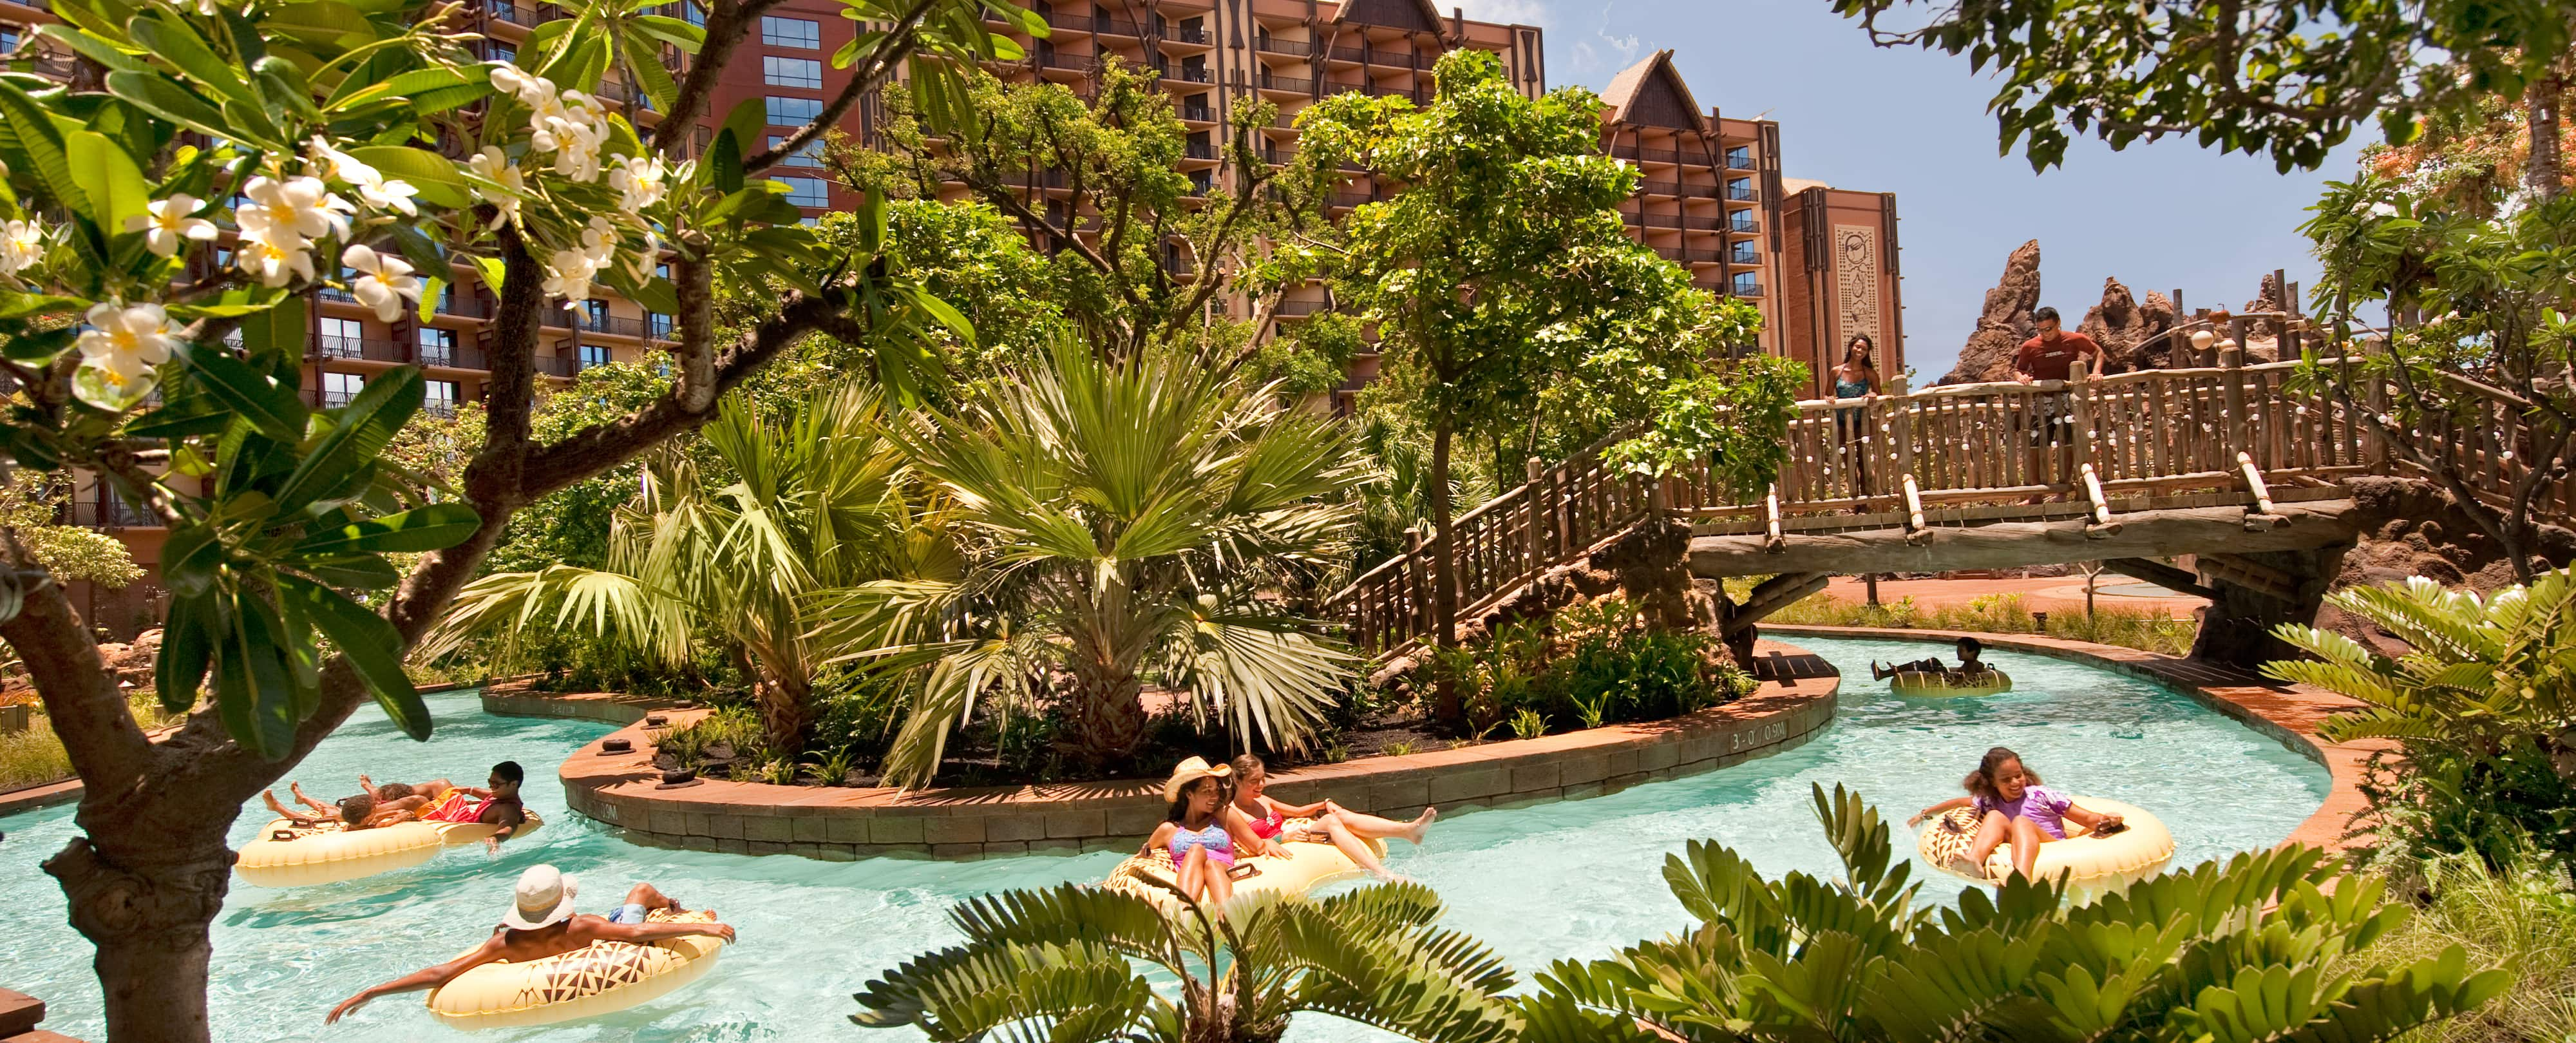 Girls float on the lazy river in the Aulani pool area